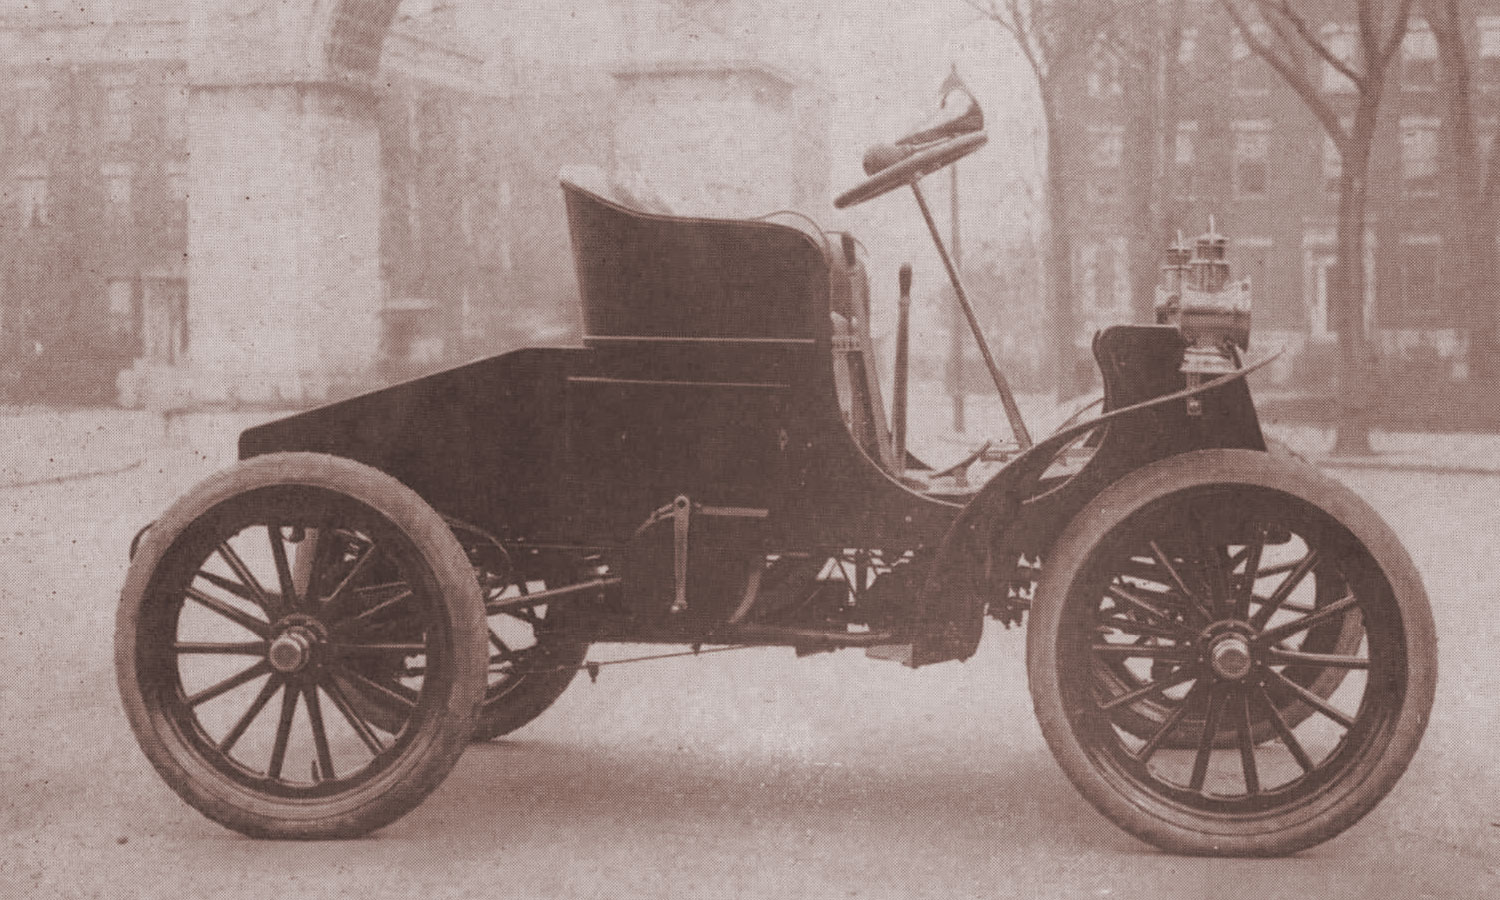 1890 - 1901 Creating an Empire | The Rise of Packard